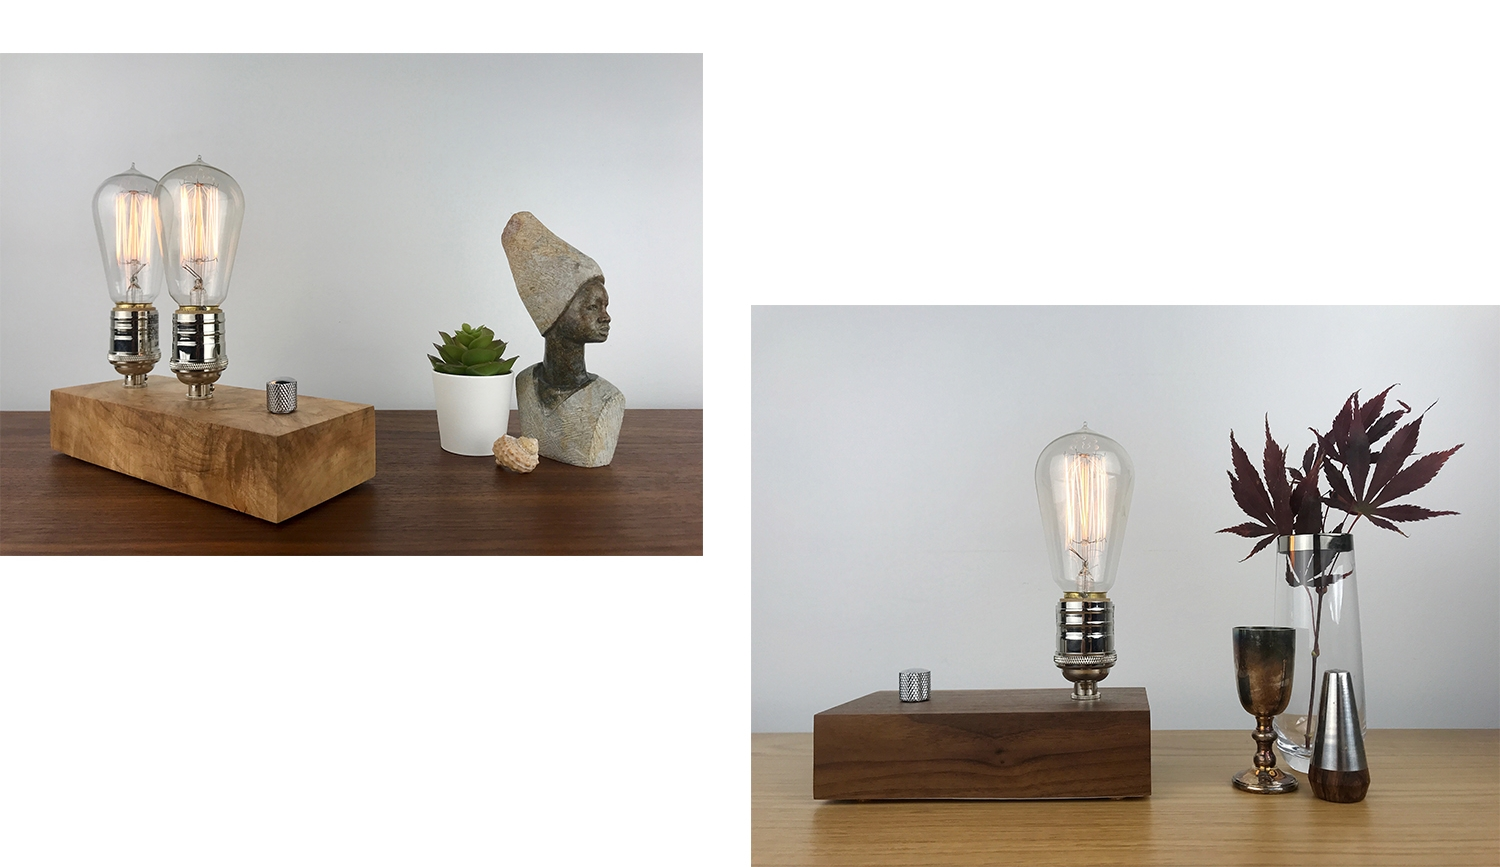 Shop Handmade with EastVanLight at Toronto's One of a Kind